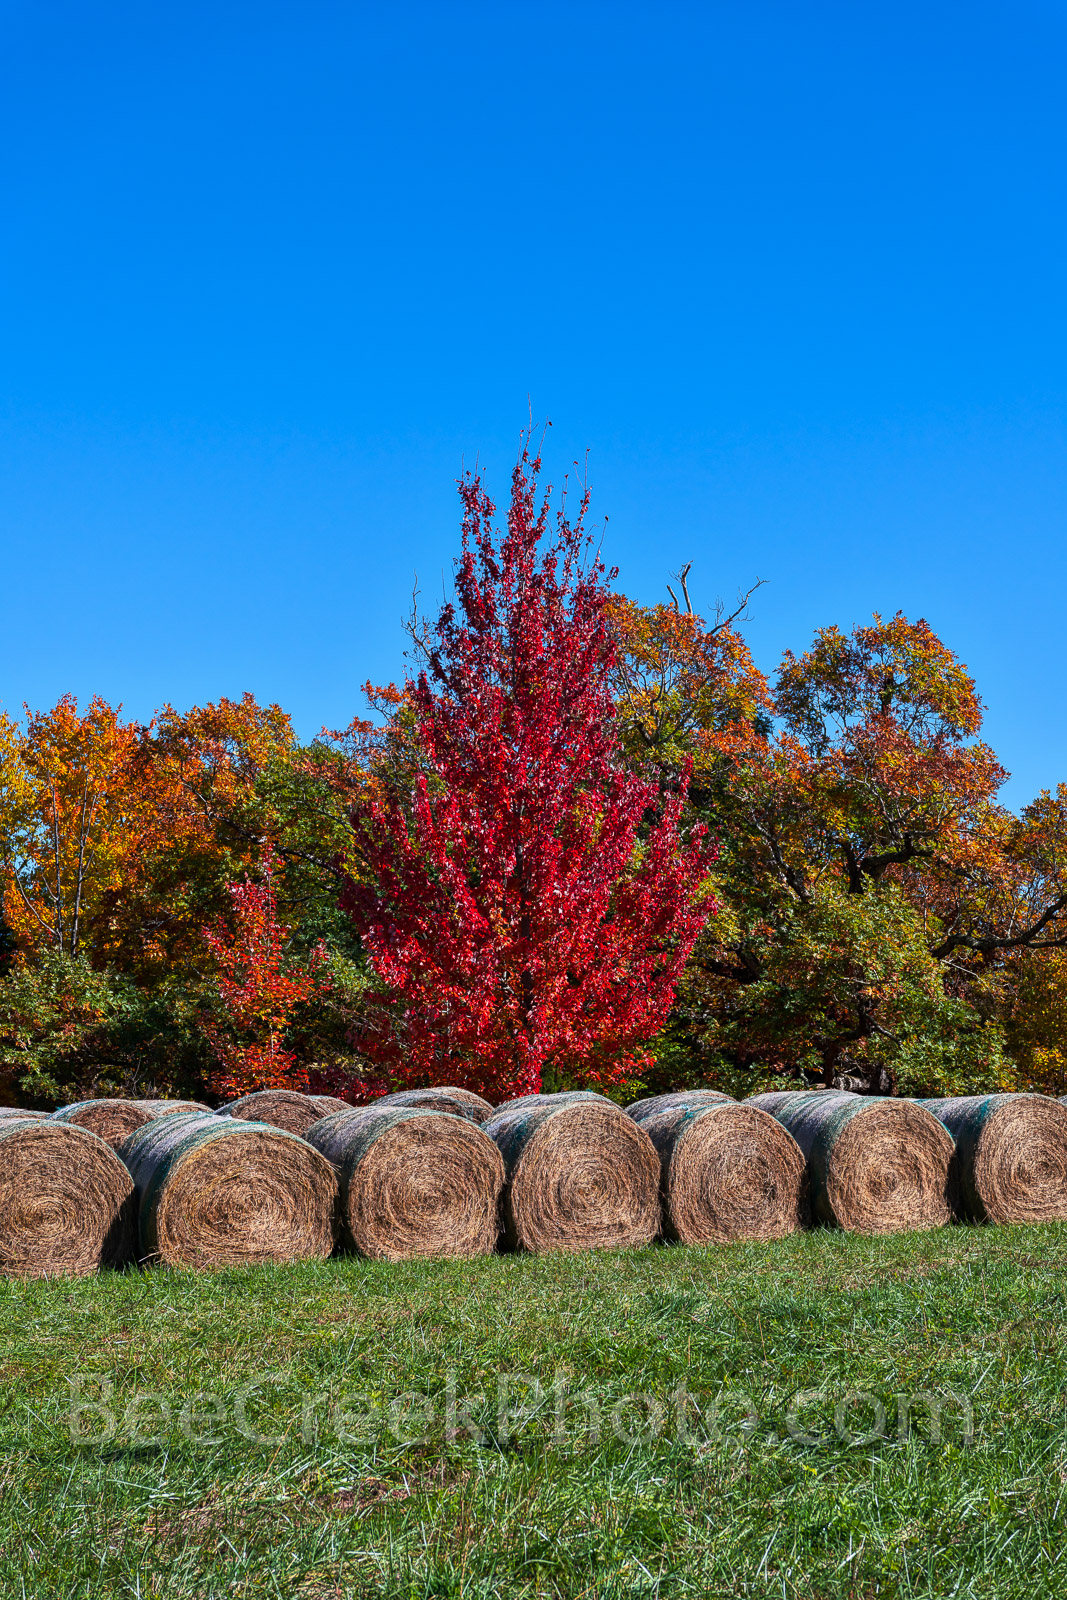 Hay Bales in Autumn2 - We got lost looking for some kind of park and came across these hay bales with these trees popping with...